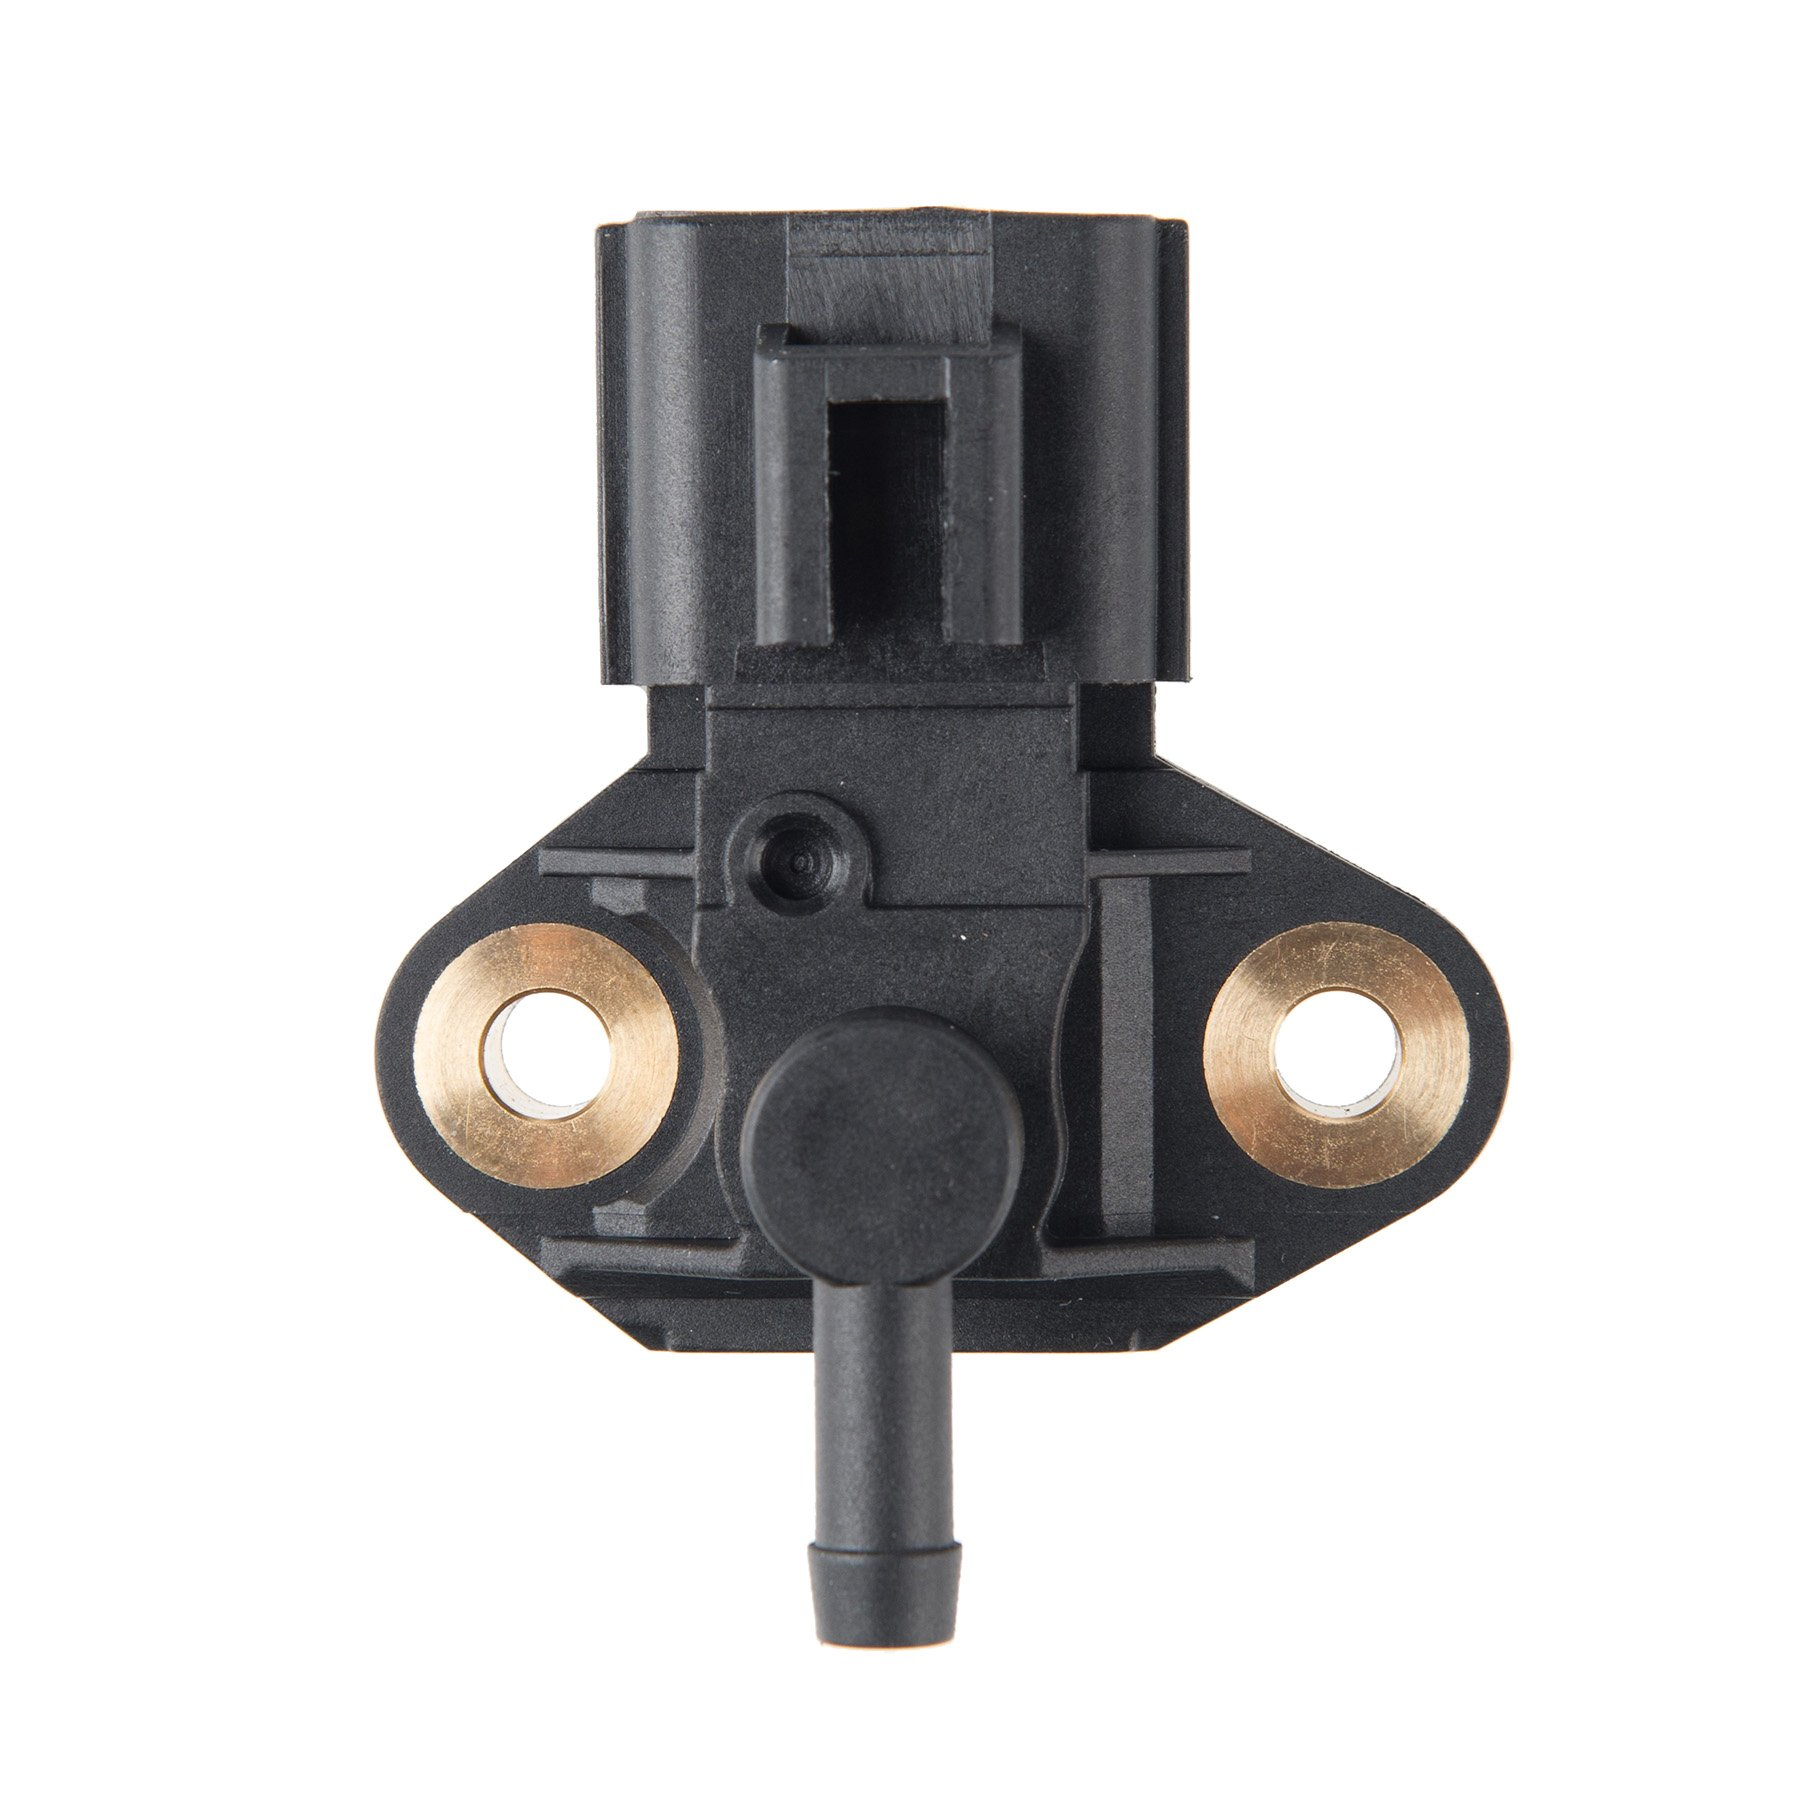 Ford Fuel Injection Pressure Sensor for Ford F-150, F-250 Super Duty, Focus, Explorer, Escape, Mustang, E-series, Lincoln, Mercury & More, Replace 3F2Z9-G756-AC